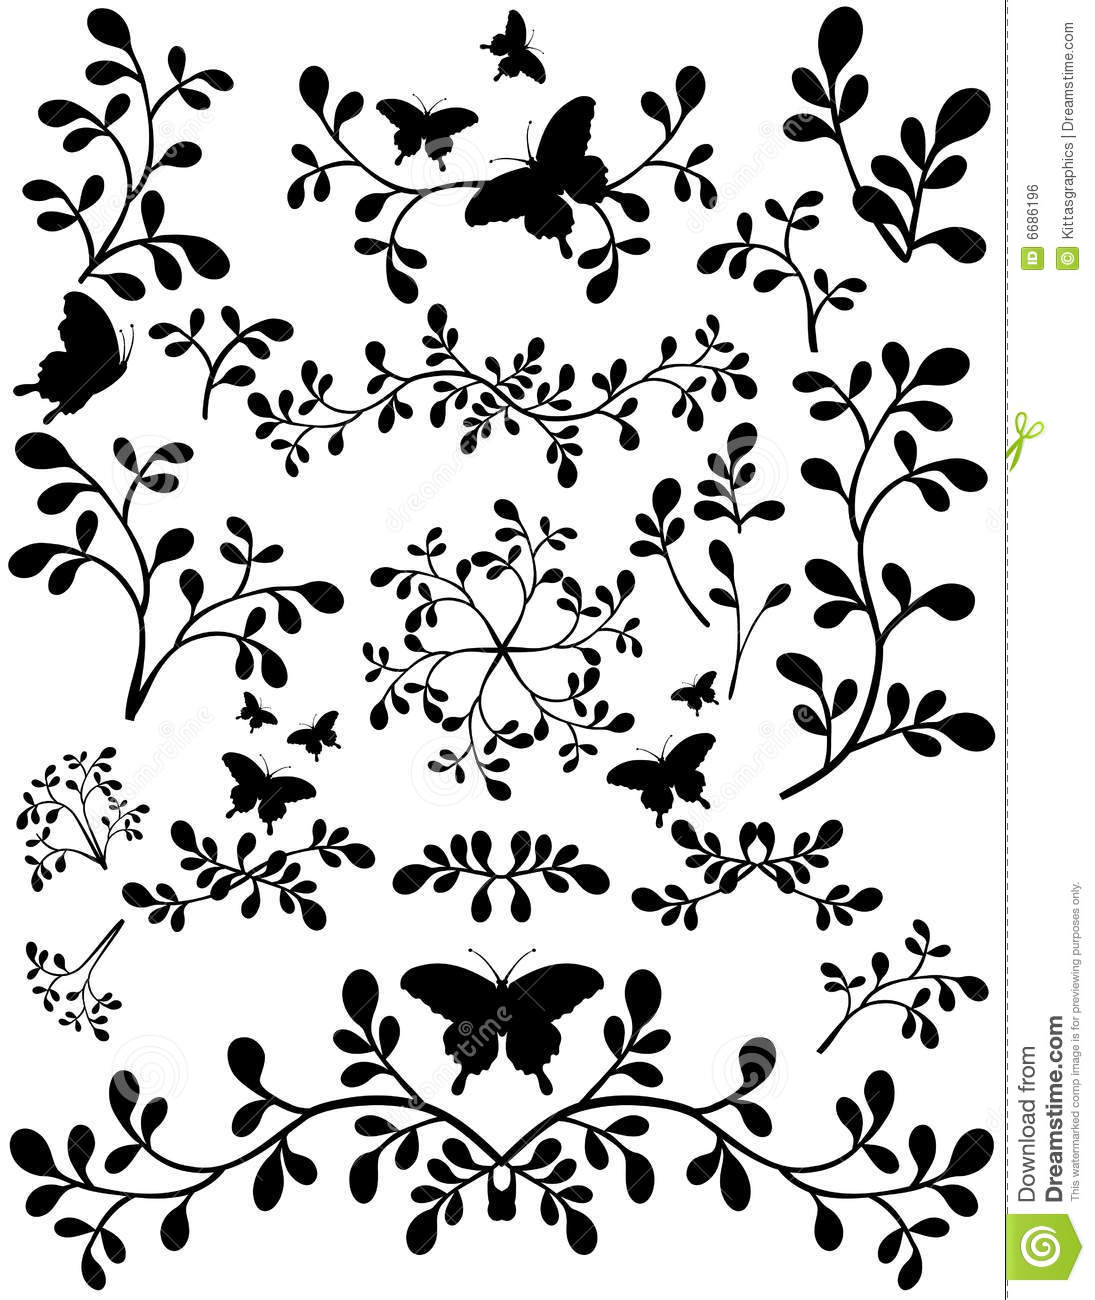 Set Of Black Flower Design Elements Royalty Free Stock: Floral Leaf Elements Abstract Silhouette Stock Vector